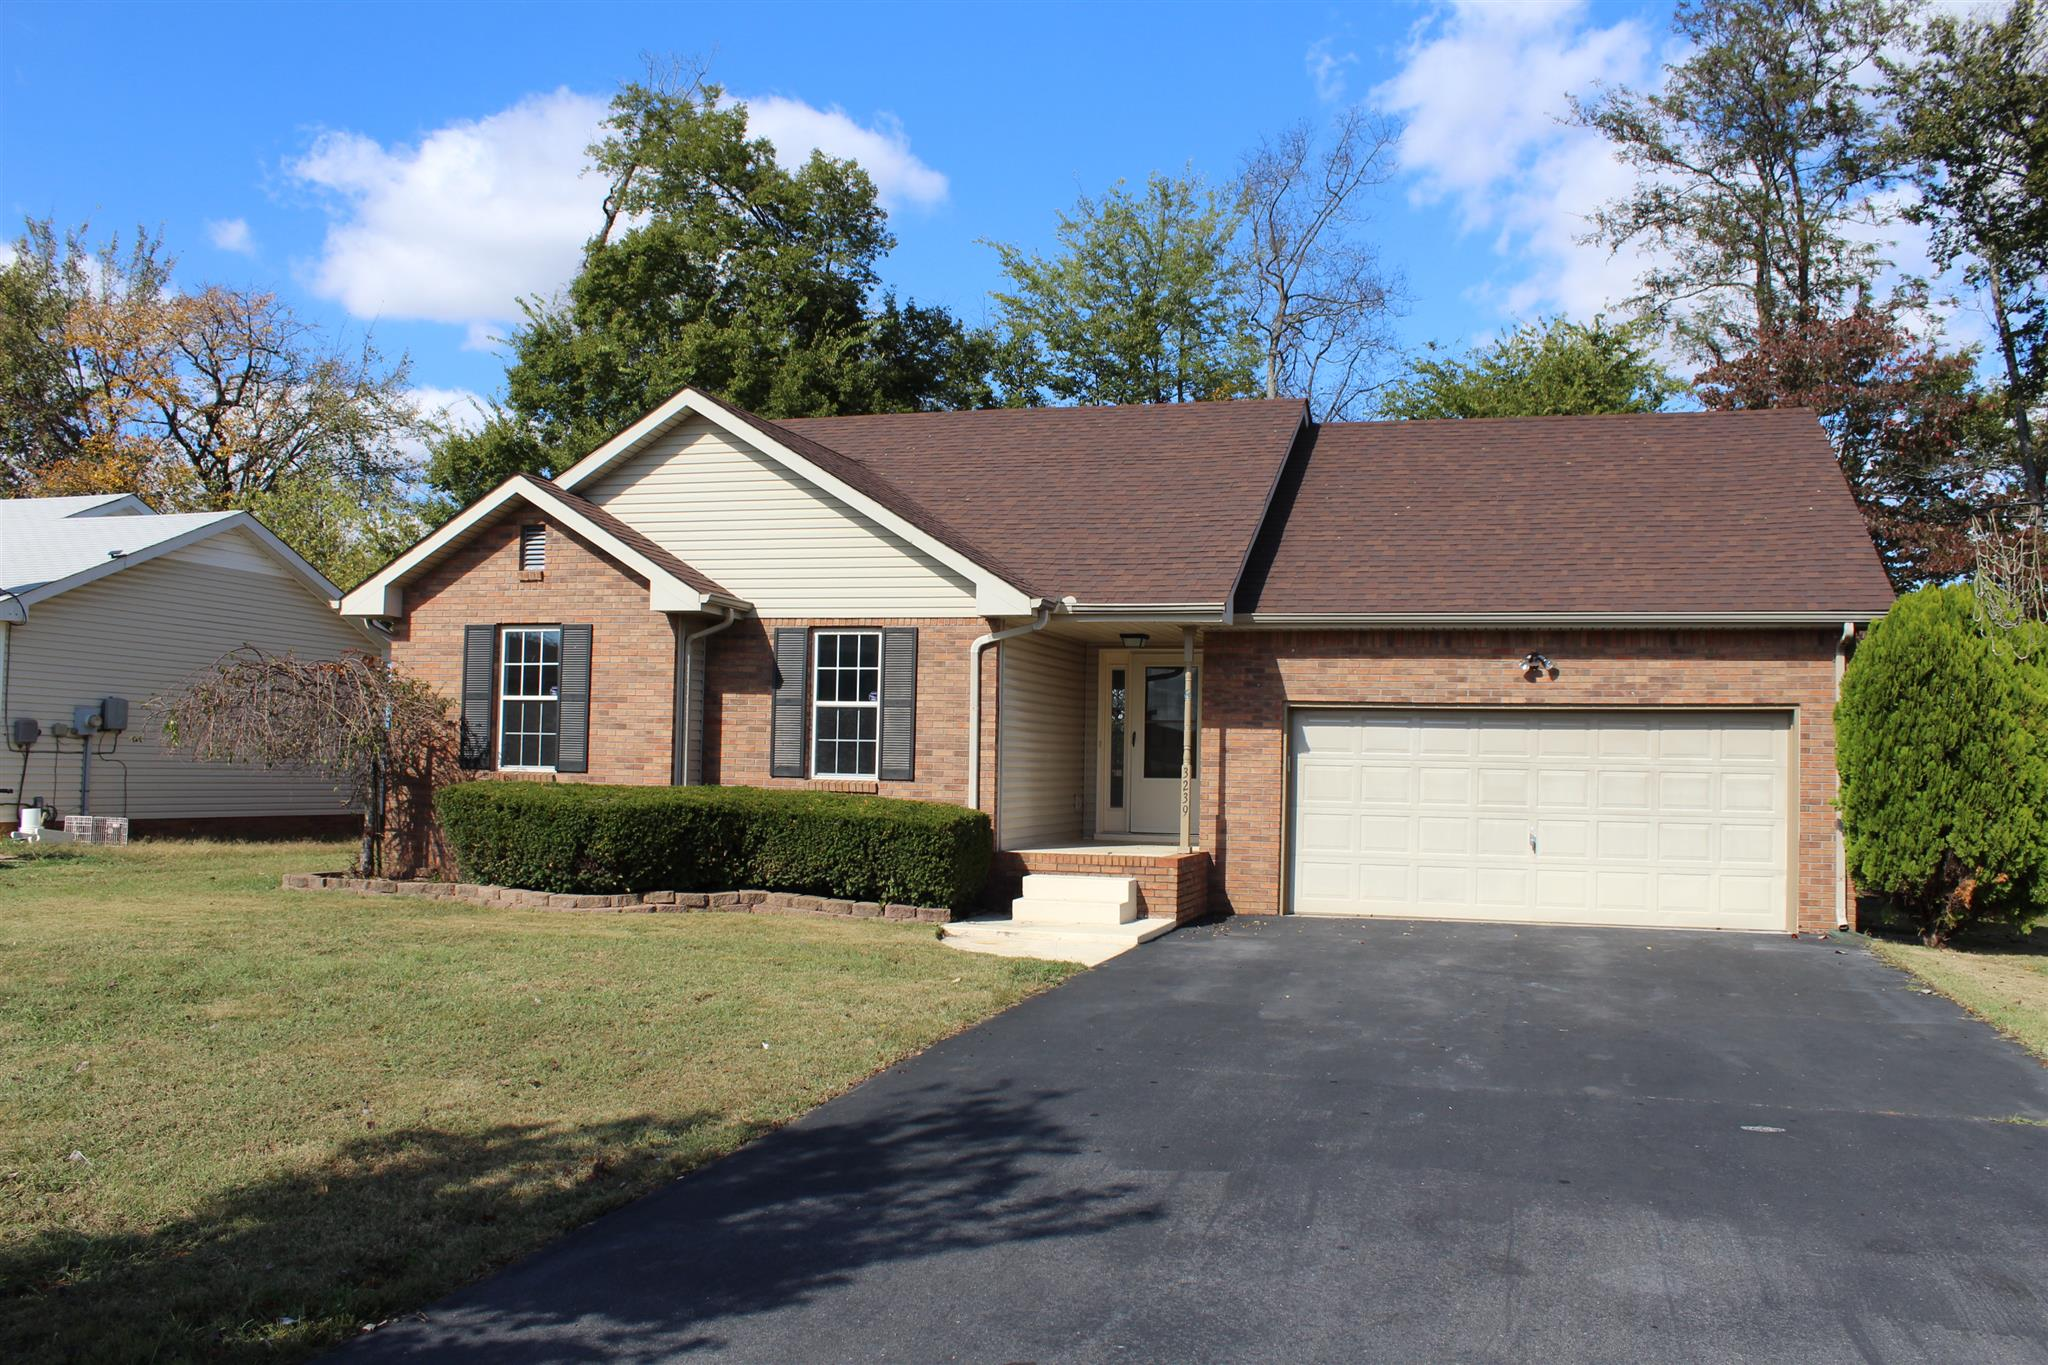 3239 N Senseney Cir, Clarksville in Montgomery County County, TN 37042 Home for Sale